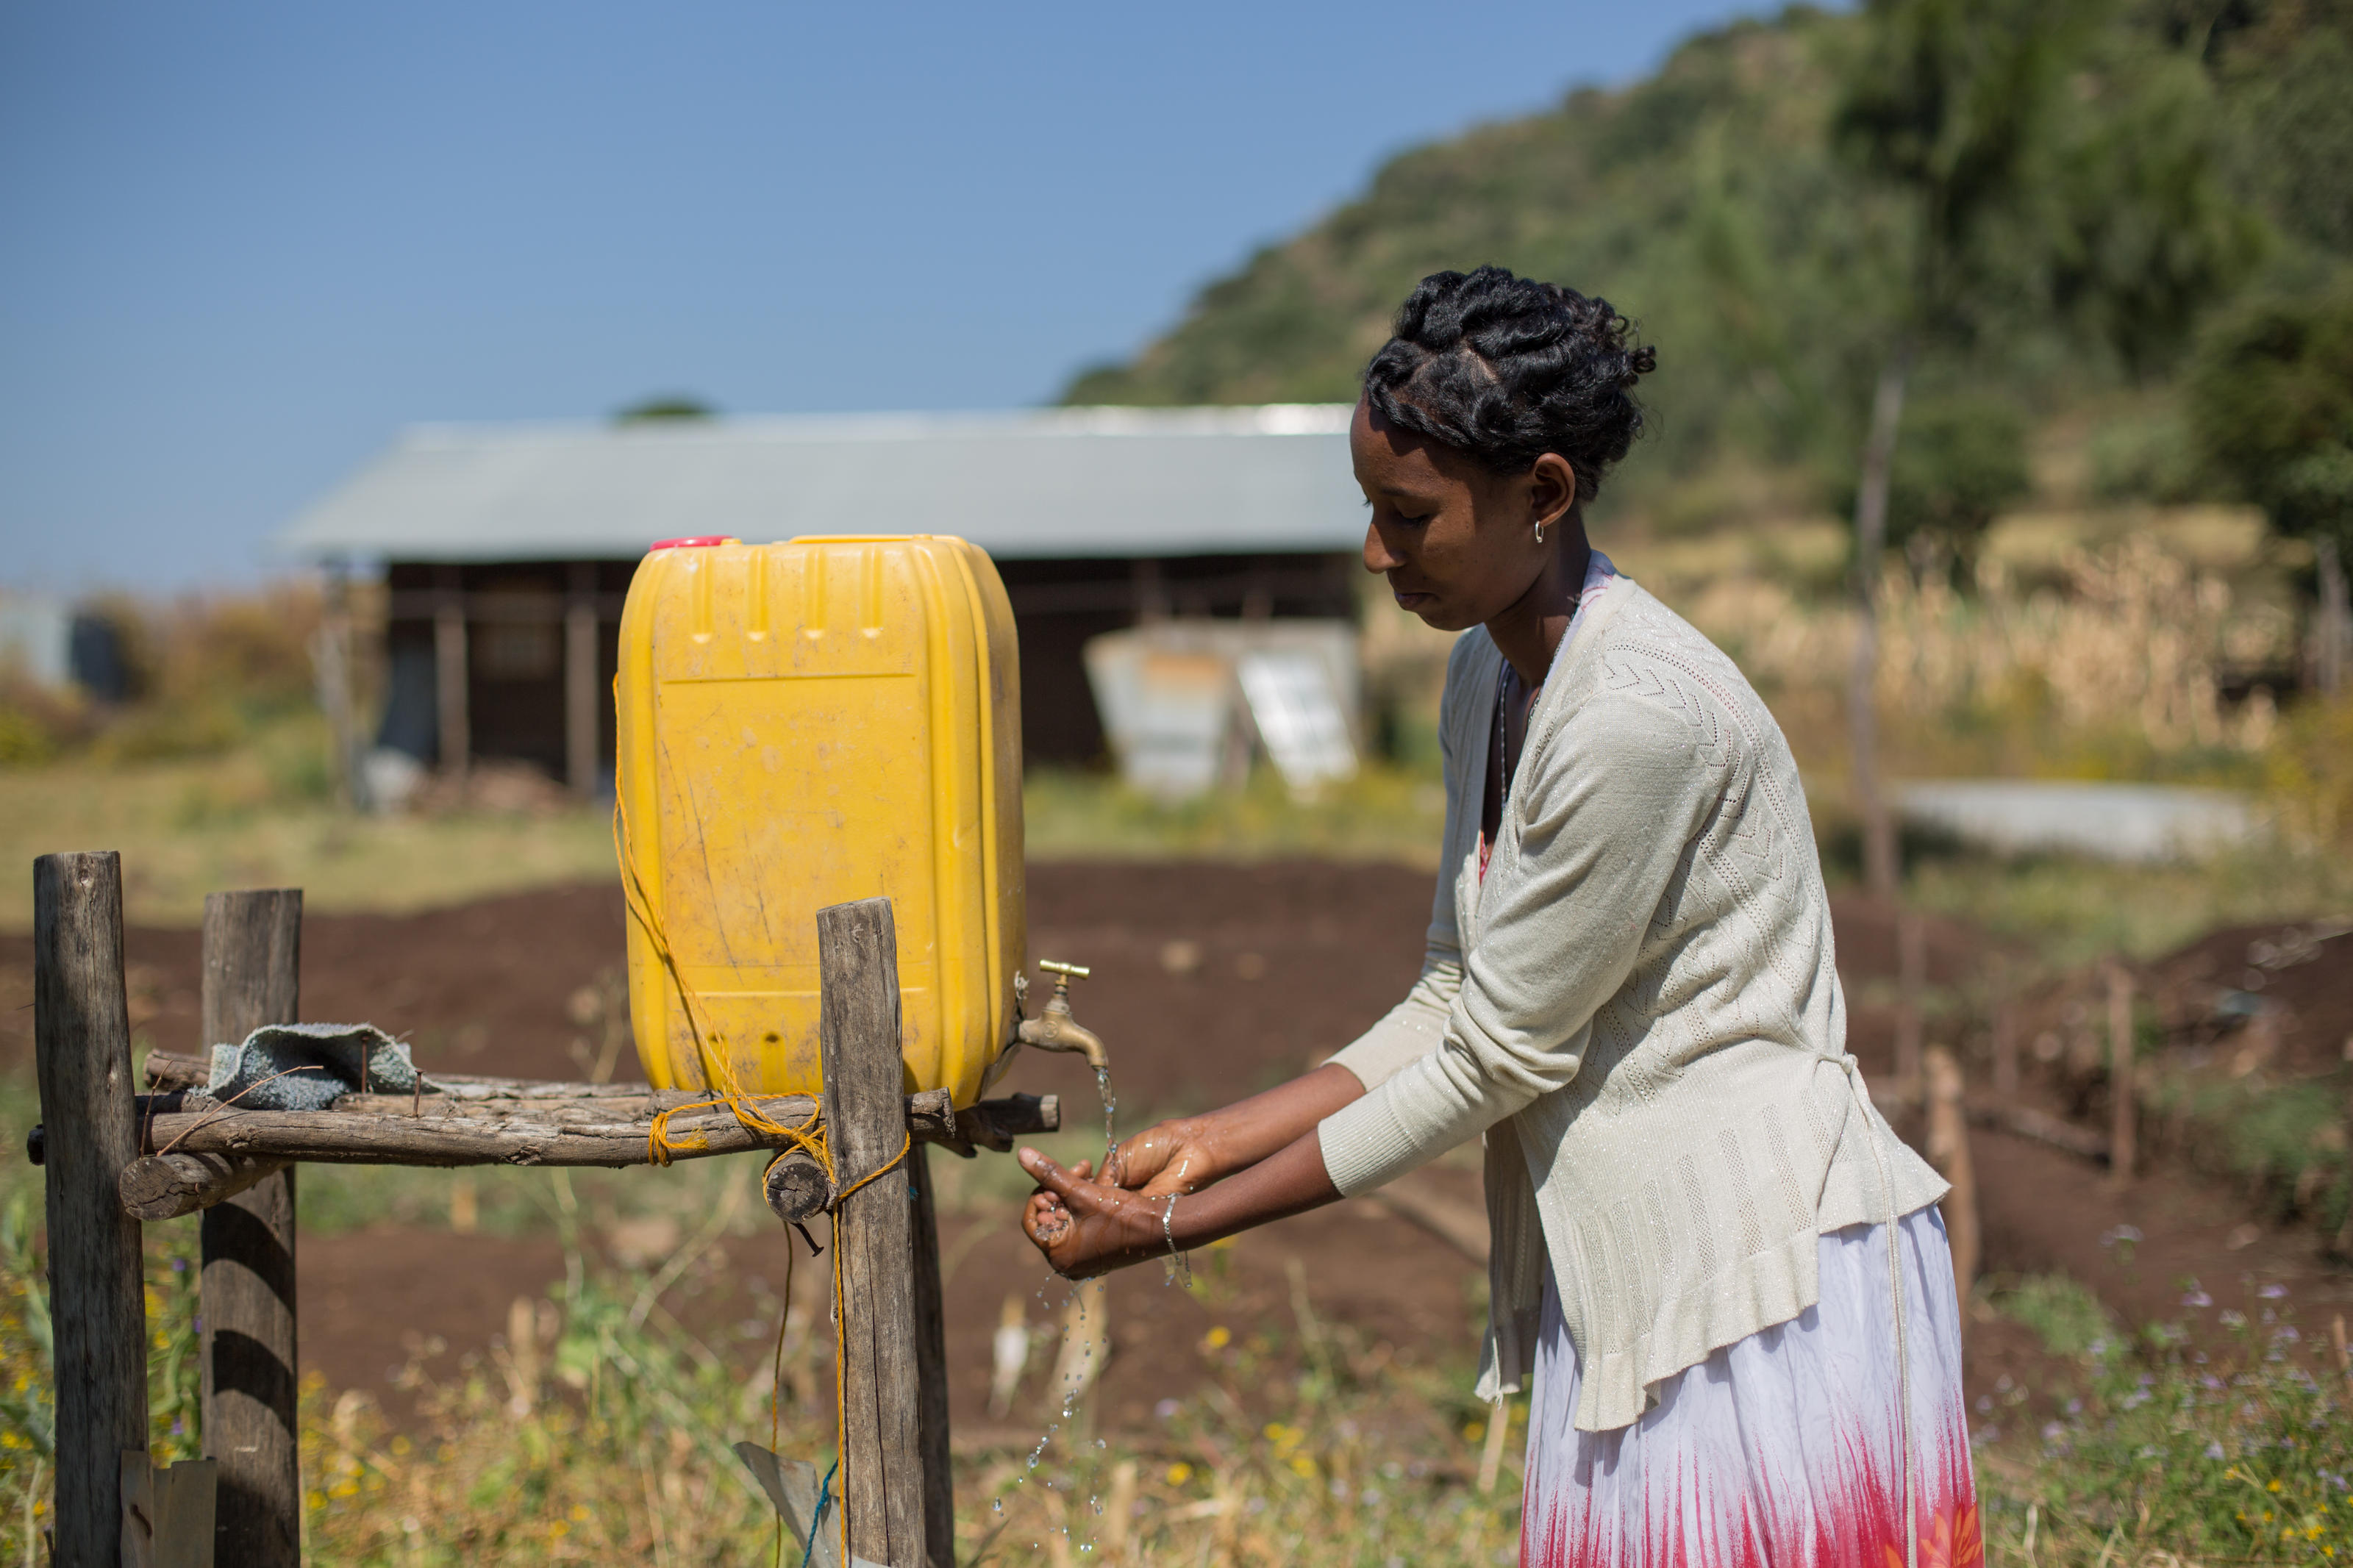 Yehasab Ayenew, 24, a cleaner, washing her hands using the 20 litres of water set aside for hand washing at Yiraber Health Centre, Ethiopia